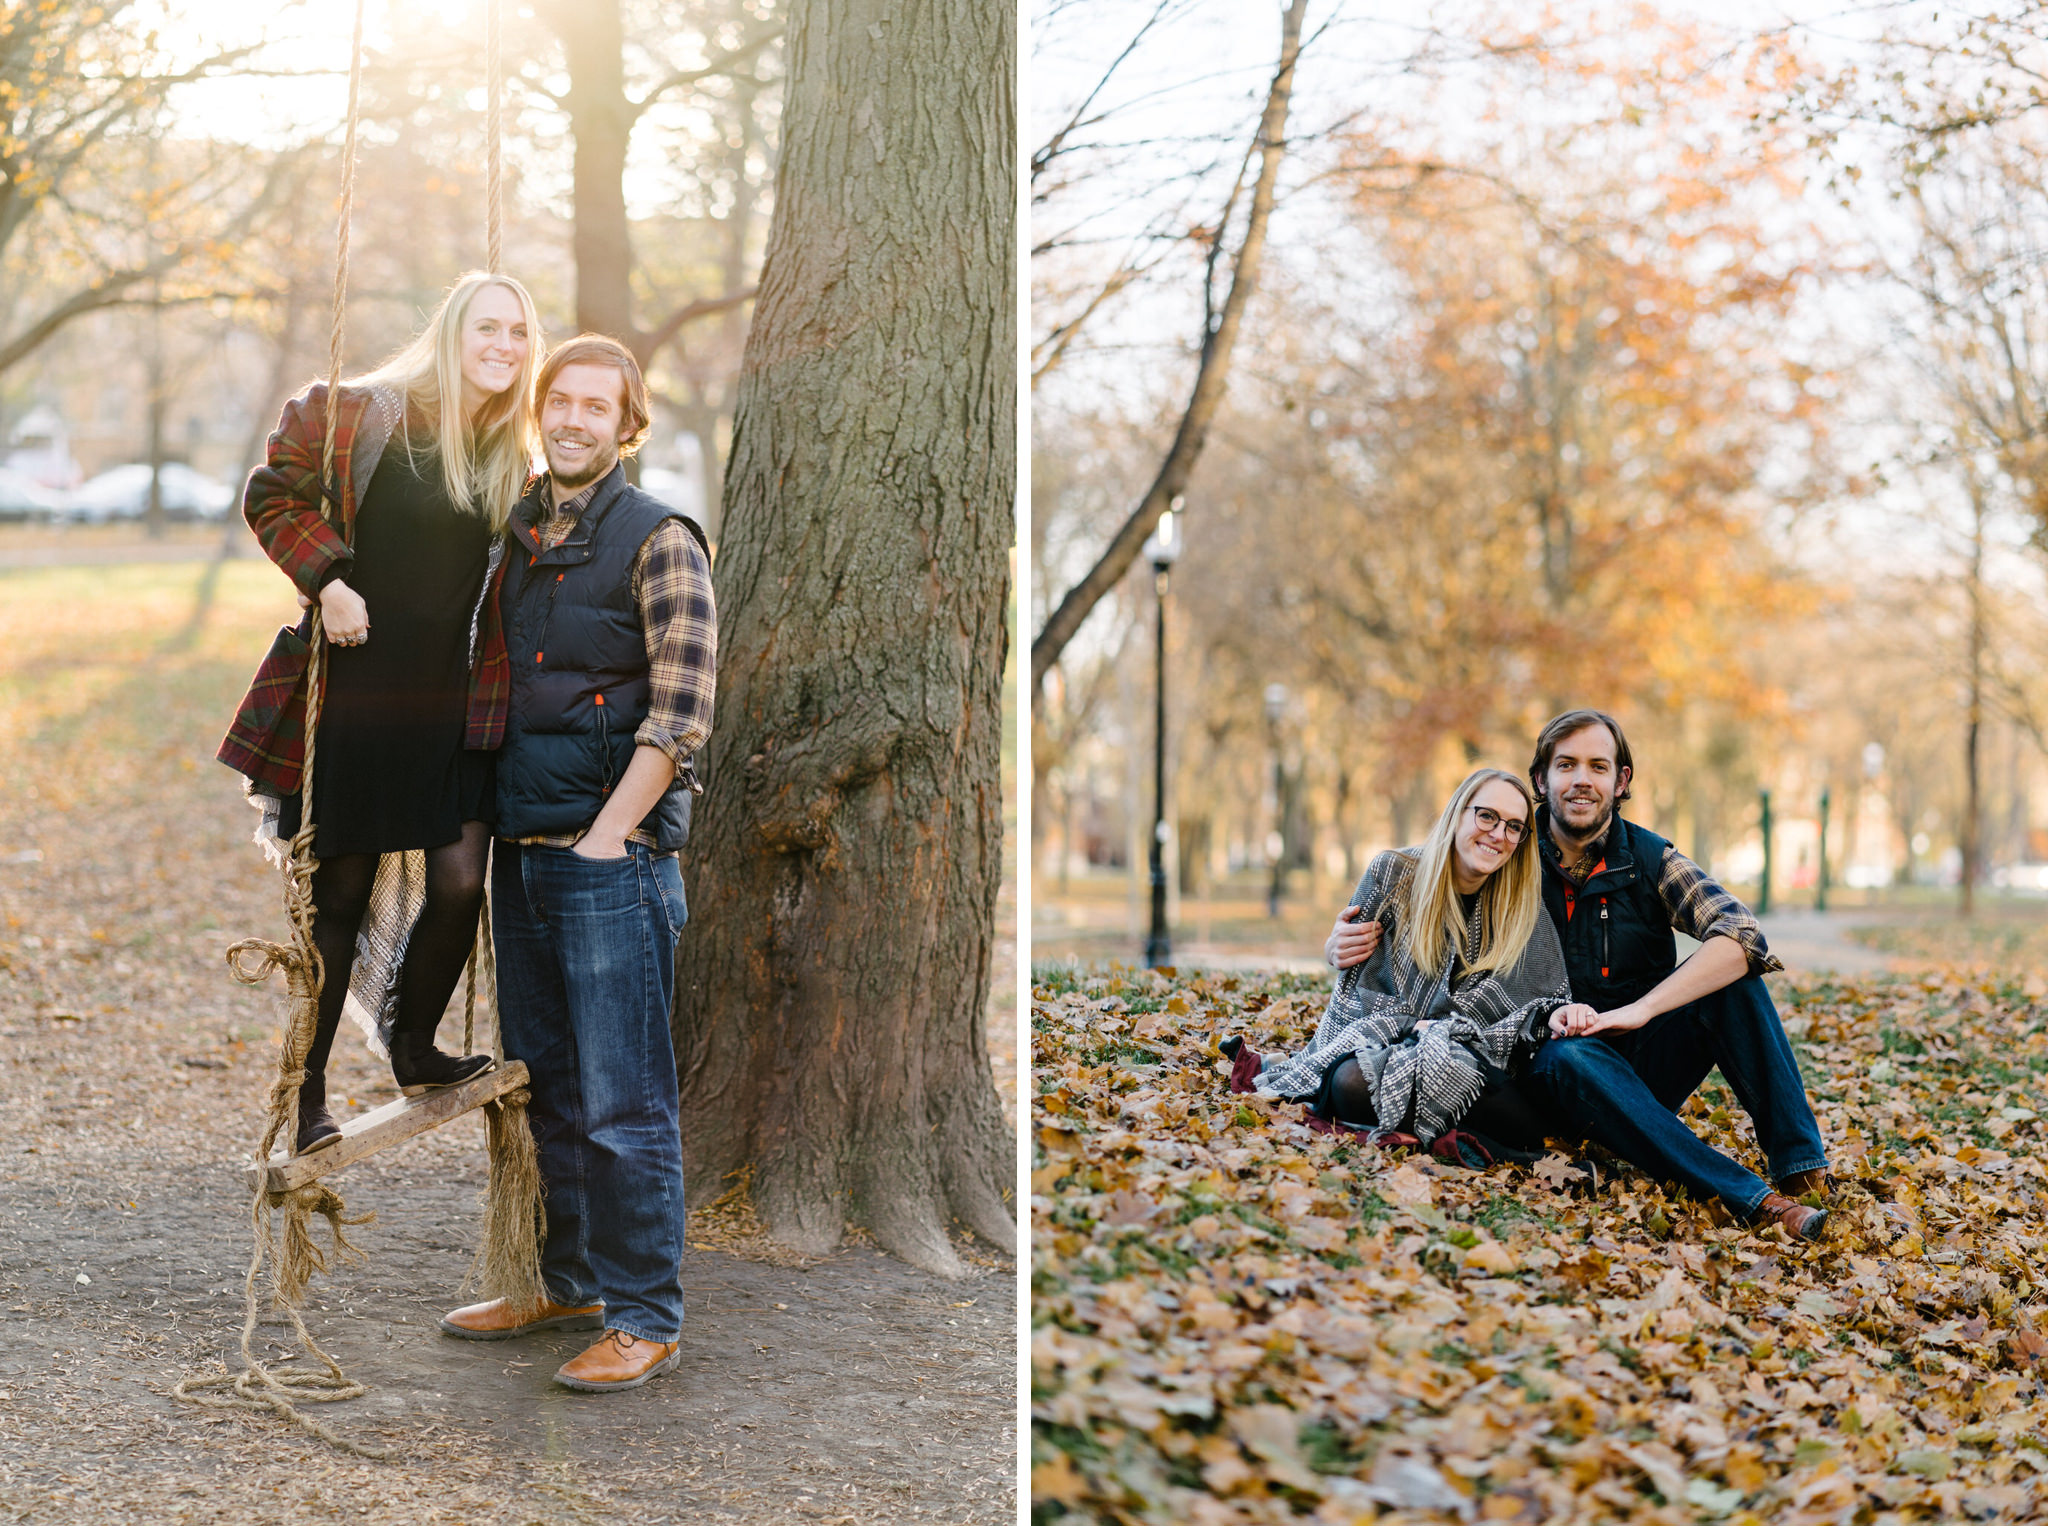 011-rempel-photography-wedding-chicago-family-oak-park-erin-kyle-logan-square-engagement-inspiration.jpg